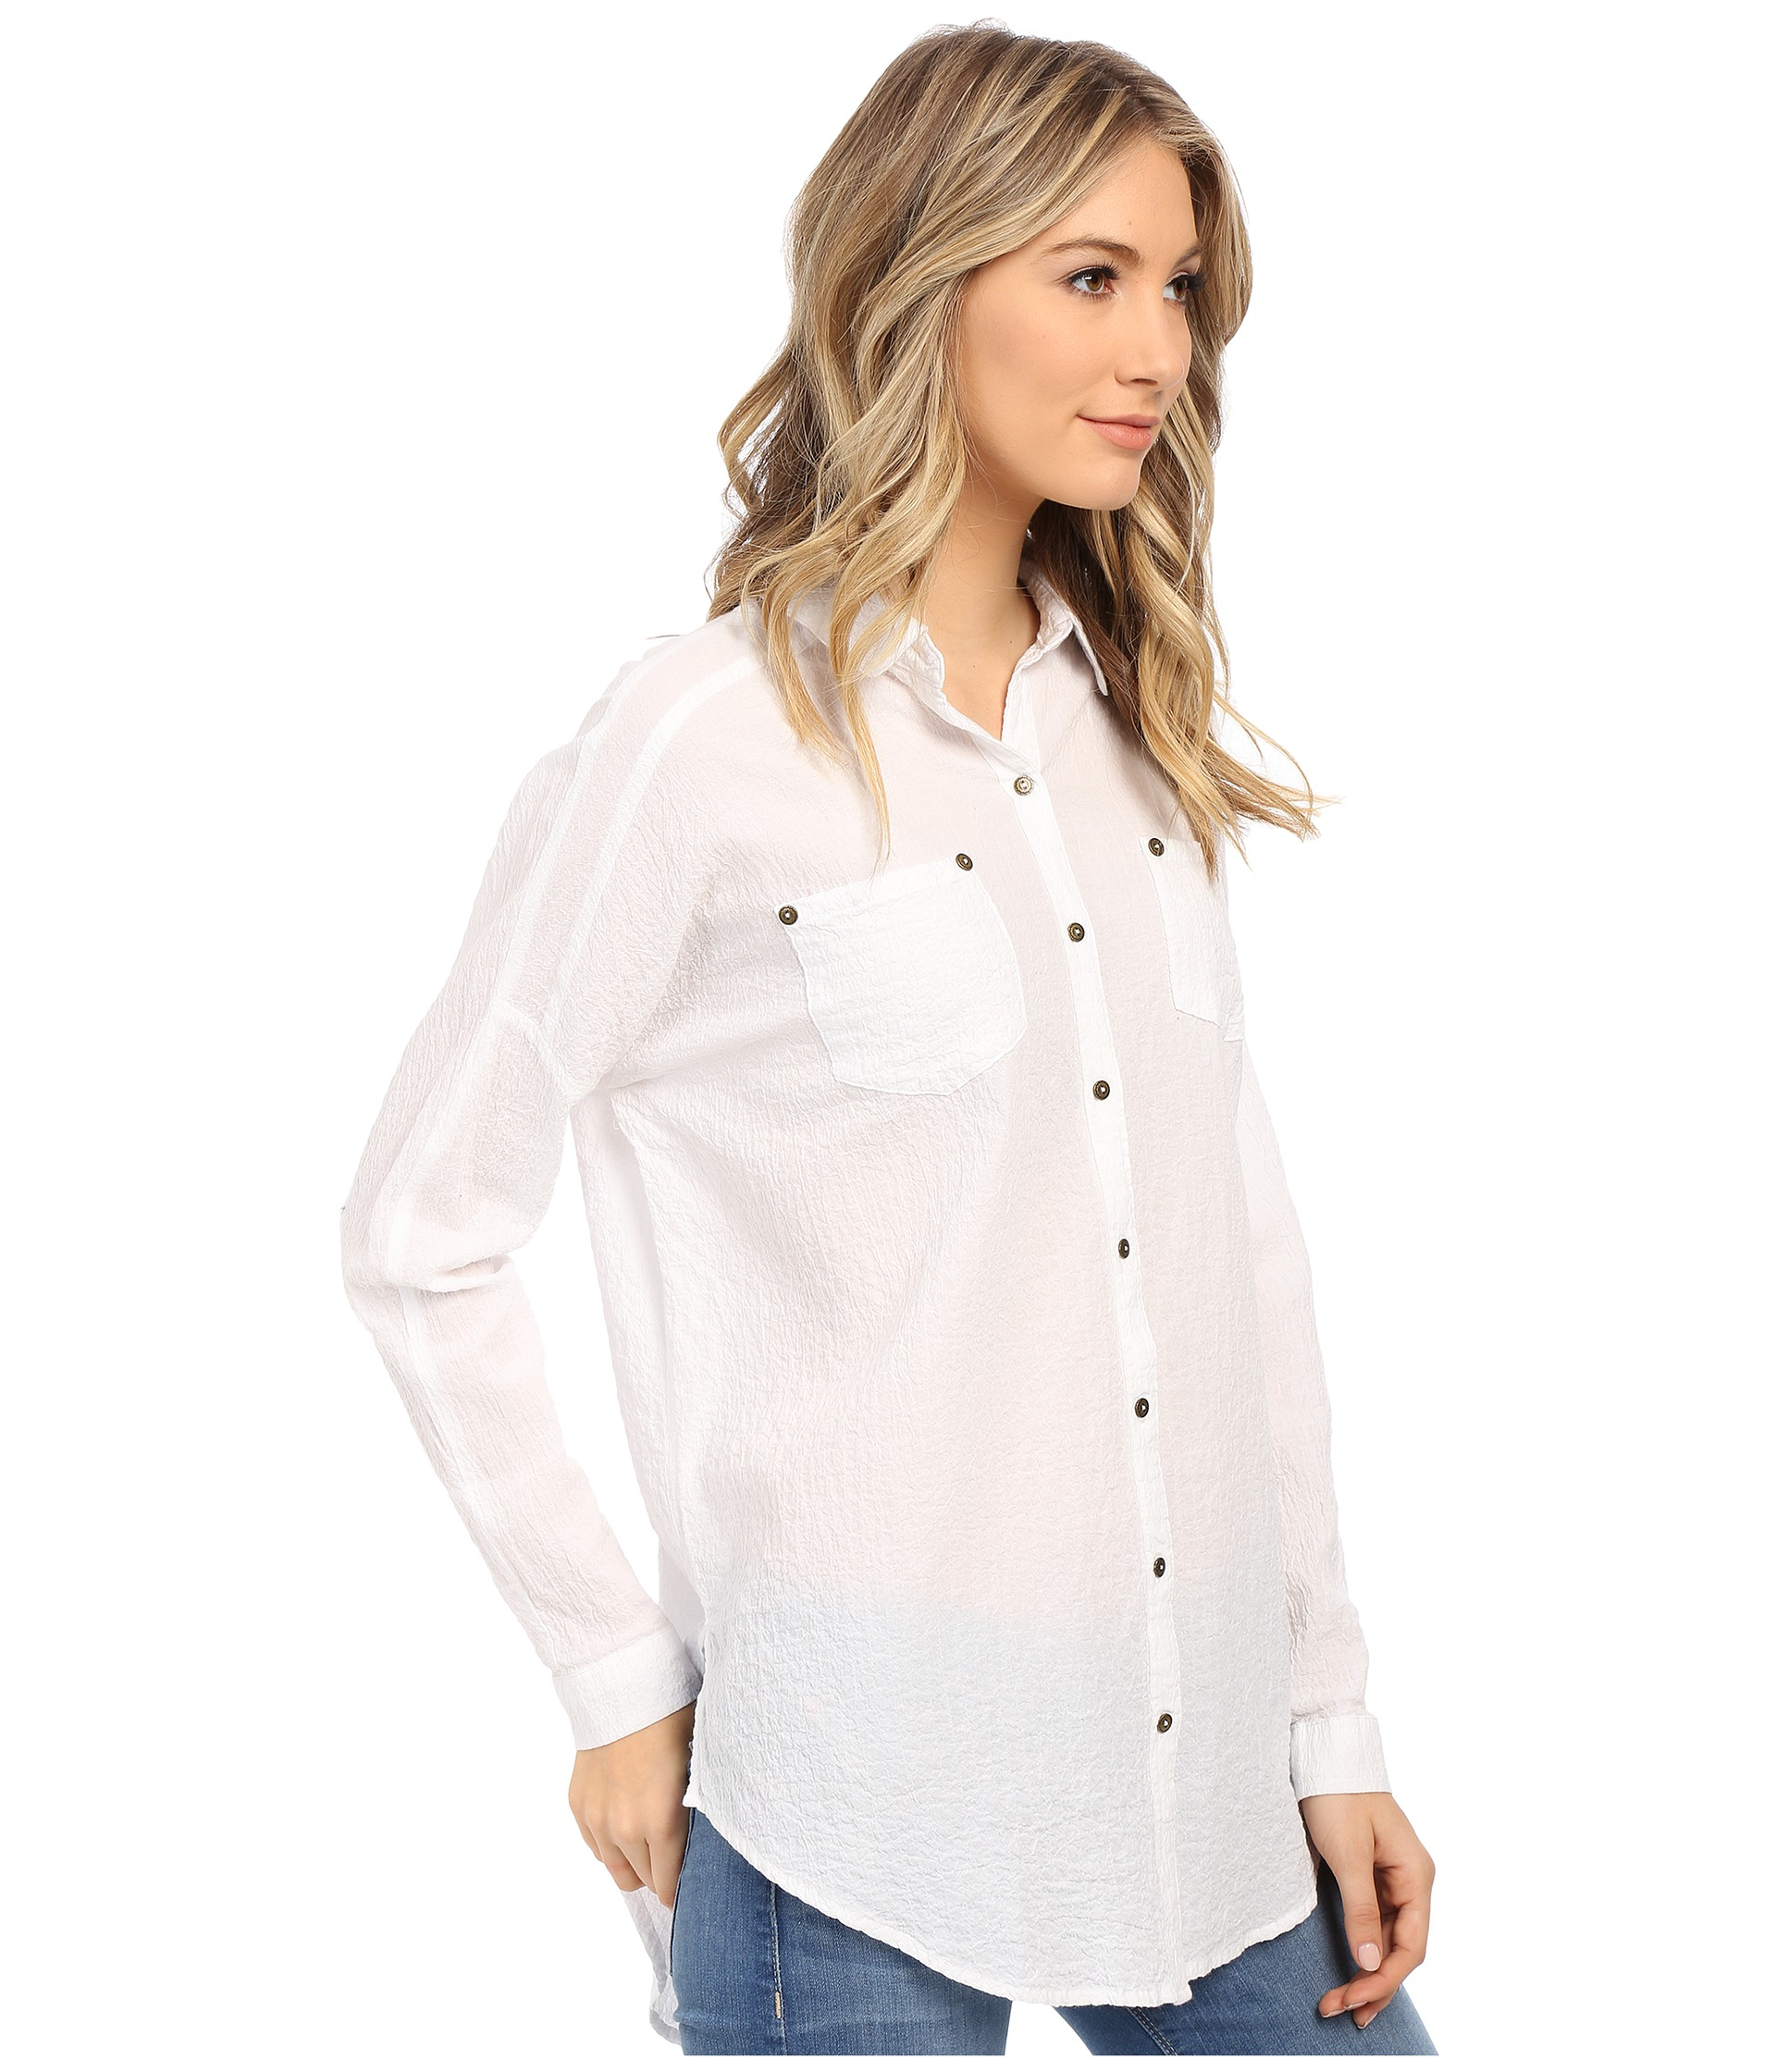 efac98e950da71 Free People Lover Her Madly Button Down Shirt in White - Lyst